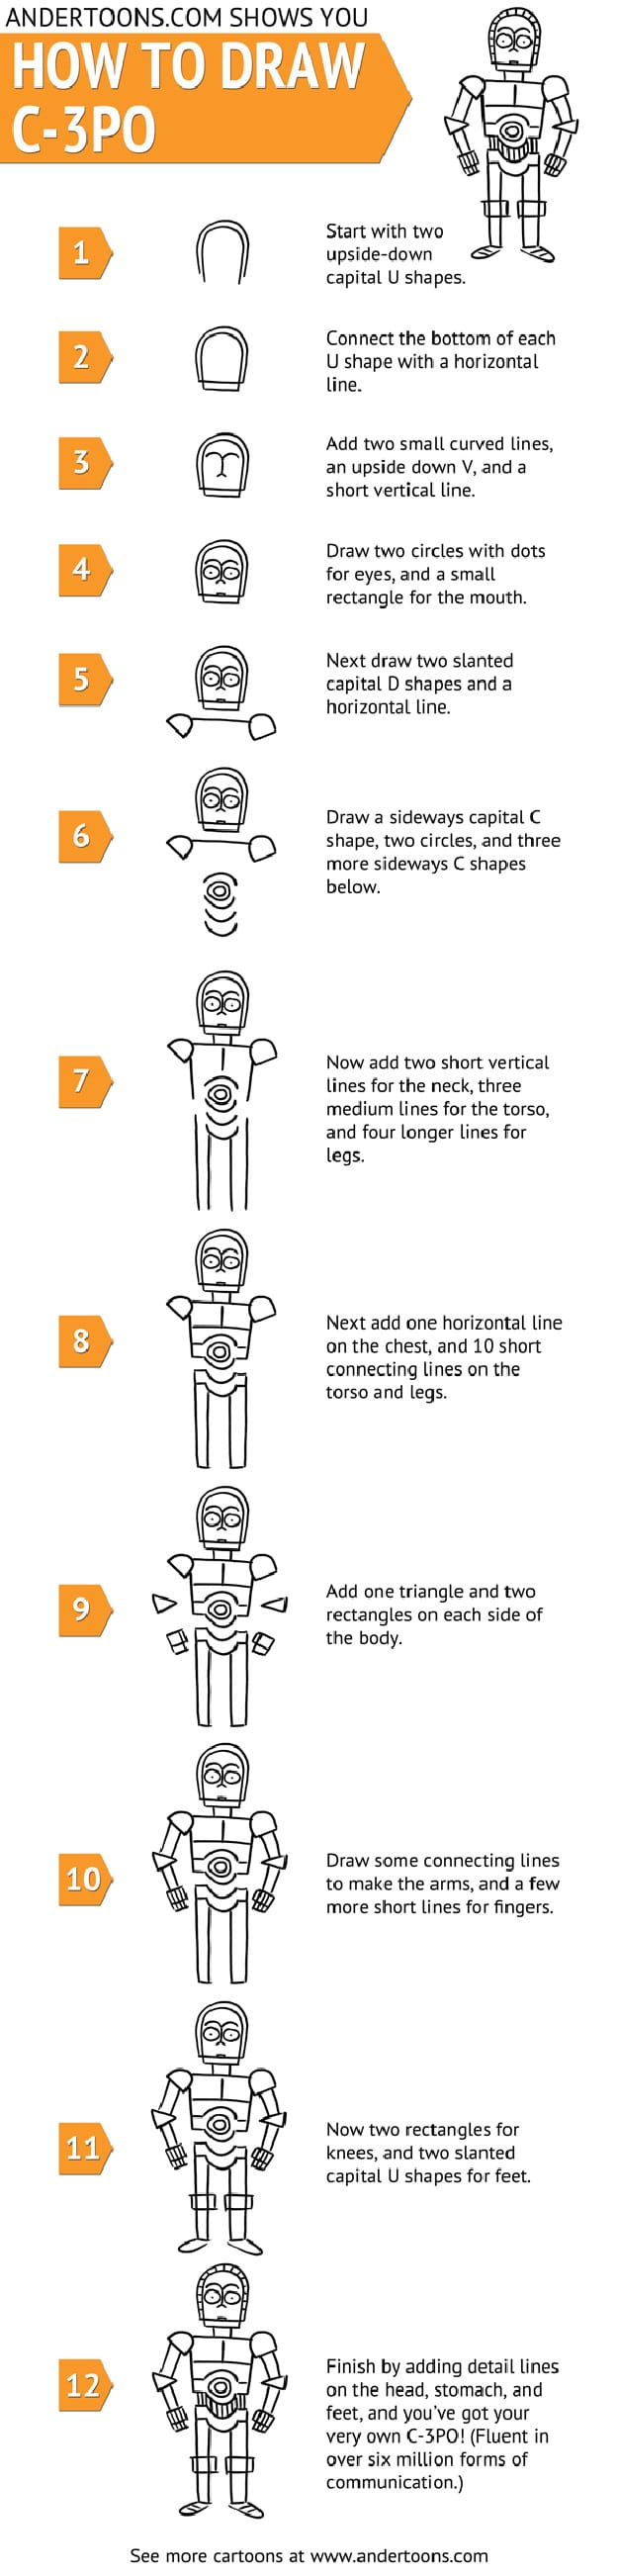 How To: Doodle A Cartoon C-3PO In 12 Simple Steps [Chart]